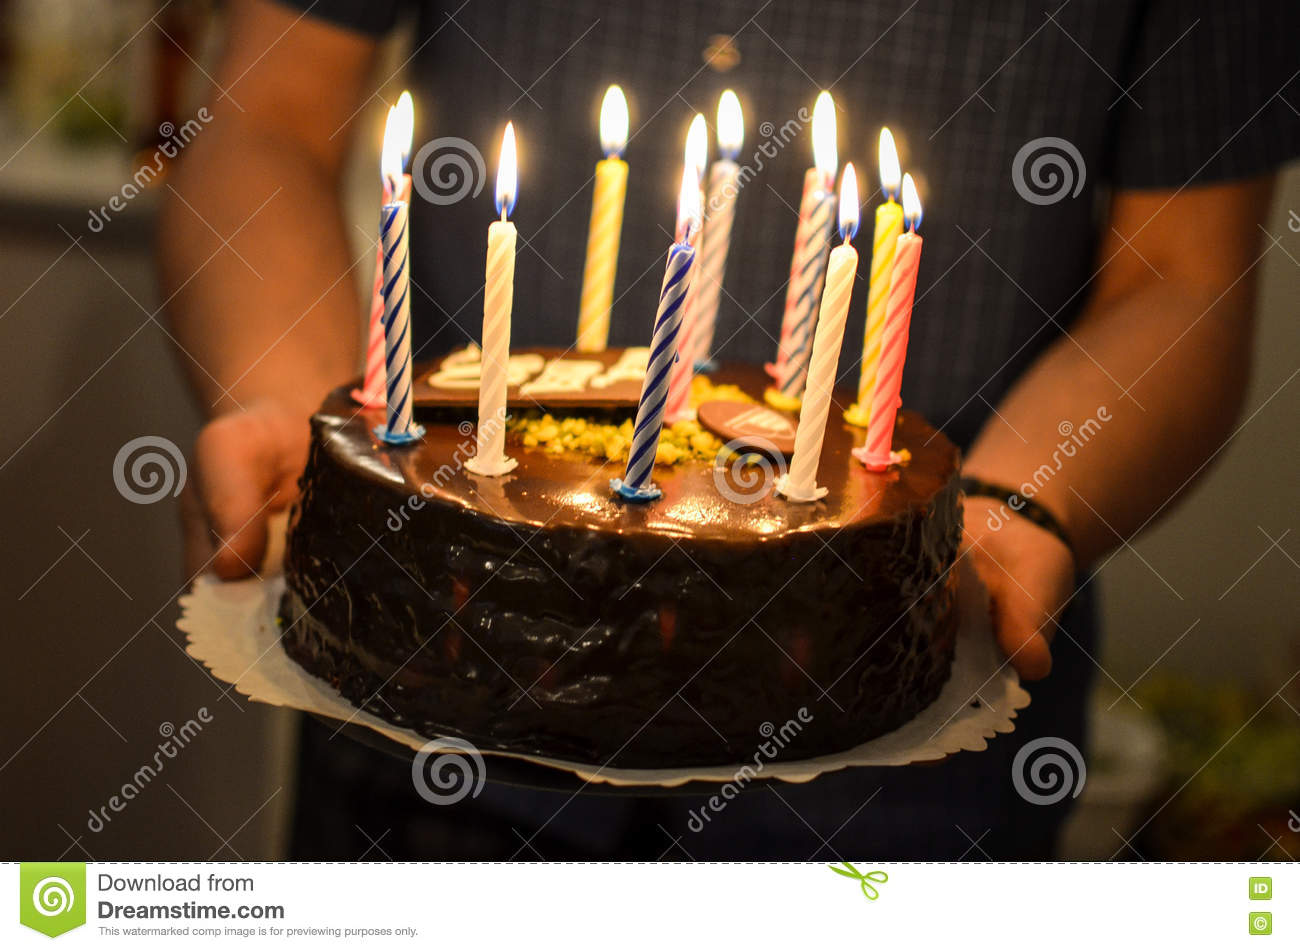 picture of birthday cake with burning candles ; birthday-cake-burning-candles-man-giving-73191265